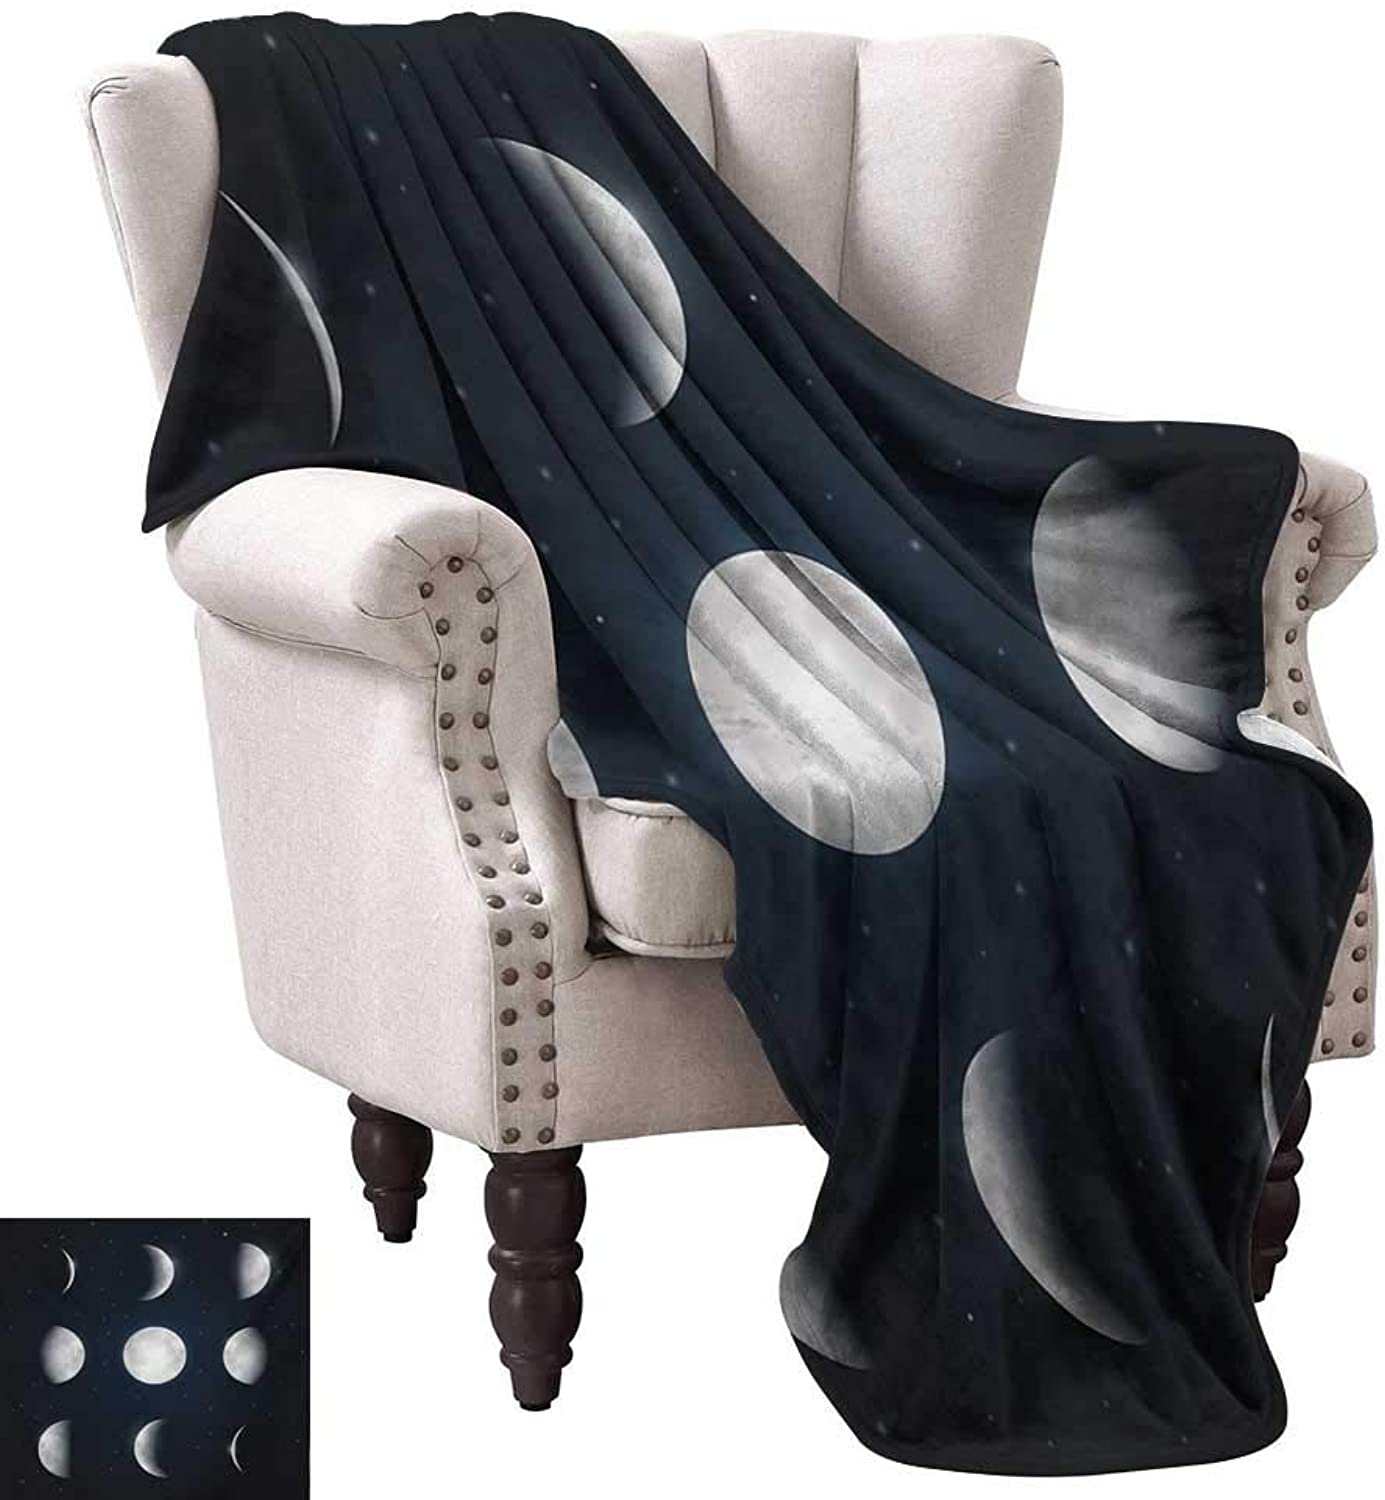 WinfreyDecor Moon Phases Warm Blanket Astronomy Astrology Theme Universe Cosmos Movement Celestial Lunar All Season for Couch or Bed 60  Wx60 L Dark bluee Silver White